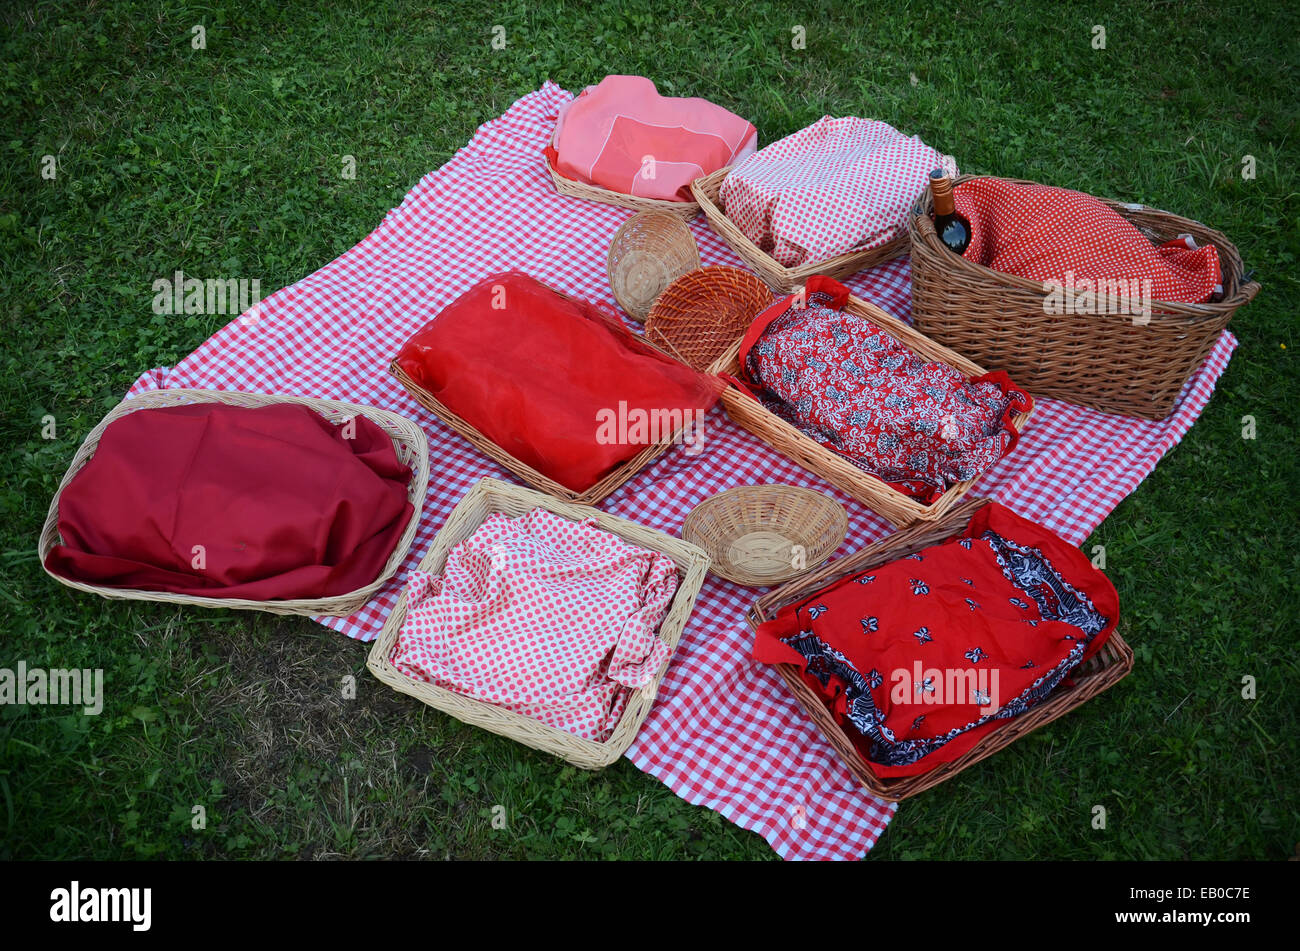 picnic baskets on the lawn - Stock Image